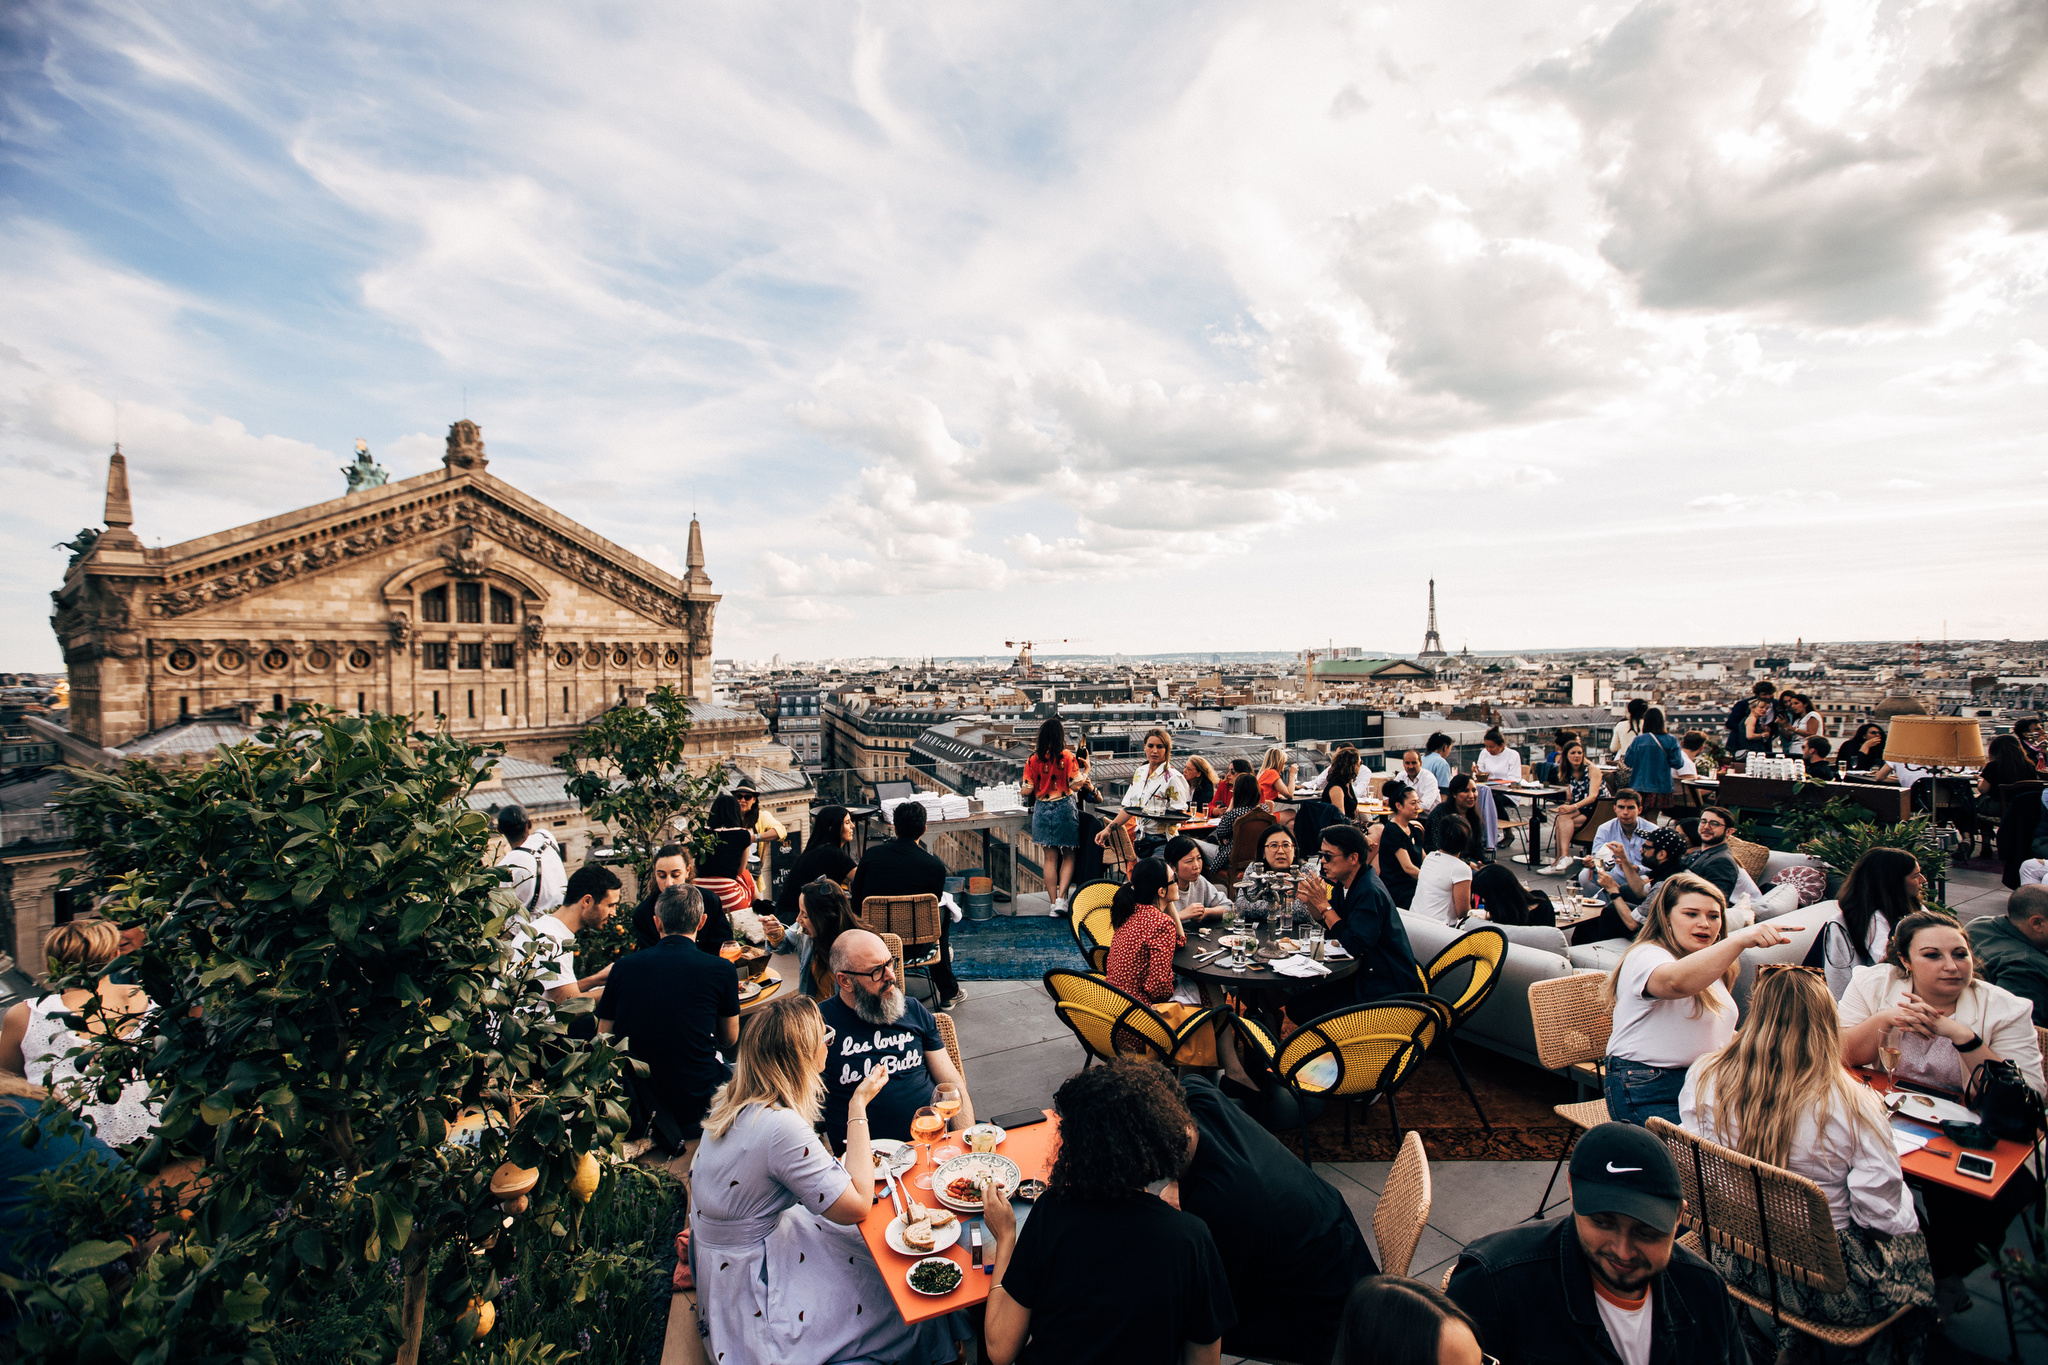 The view from CrŽatures, the new rooftop bar on the 8th floor of the Galeries Lafayette.